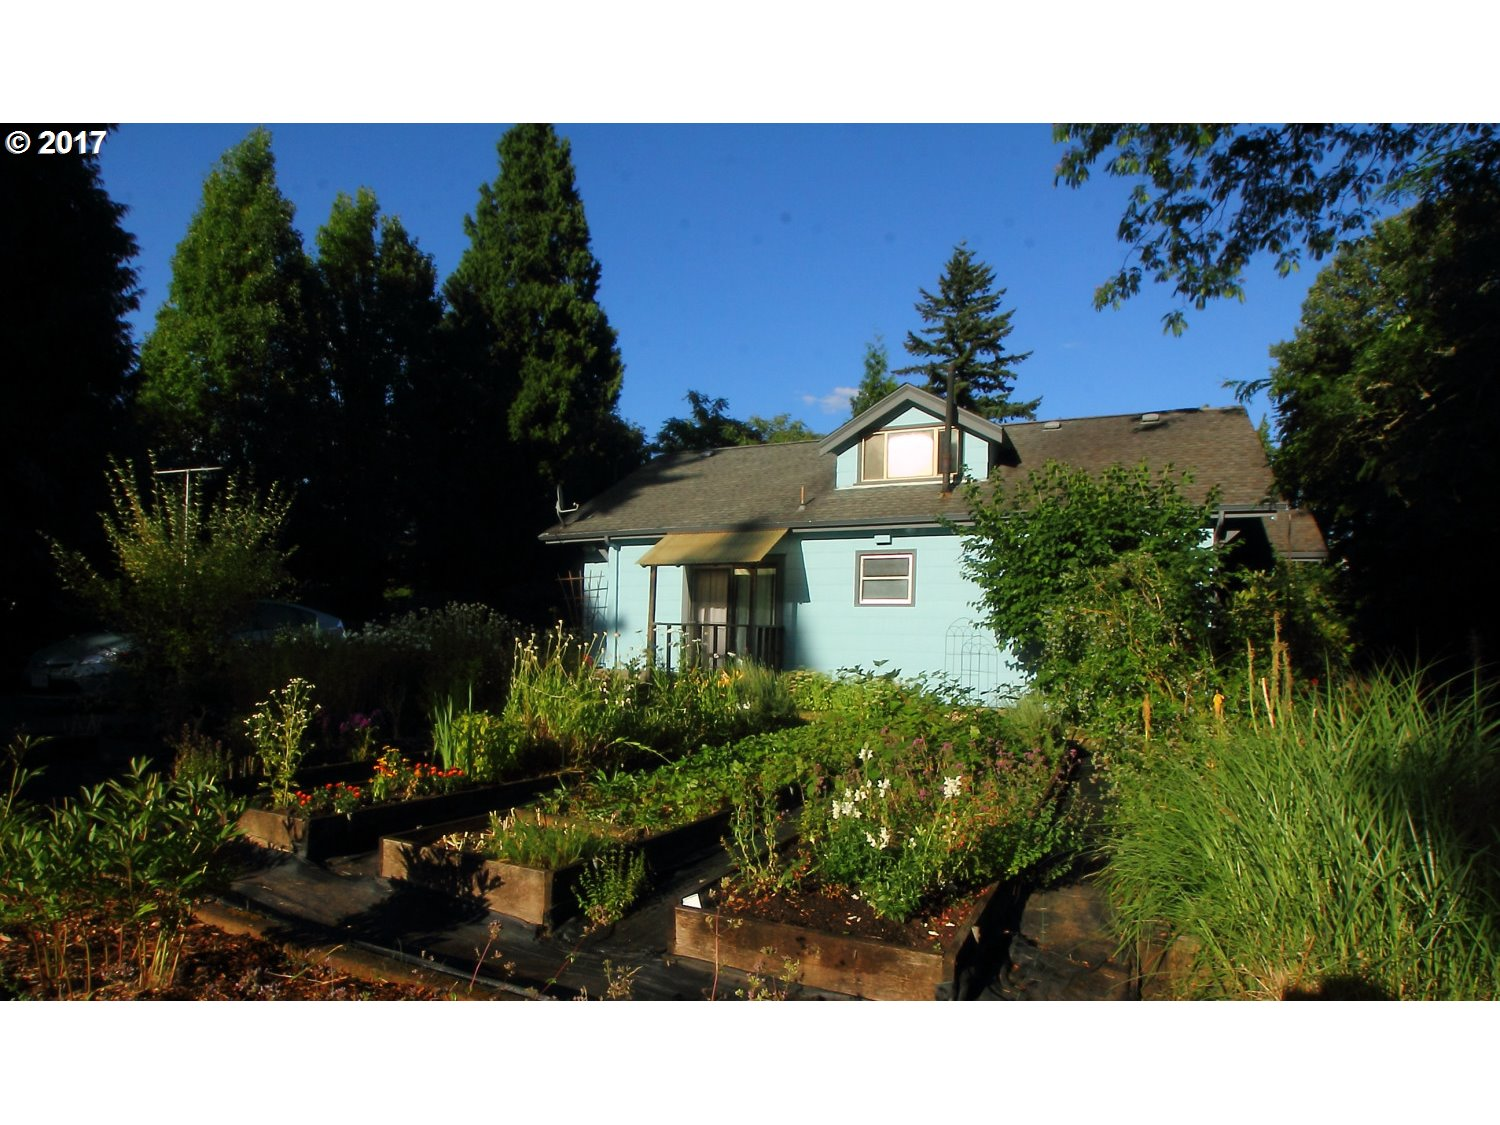 Great garden with mature fruit plants. Fresh paint everywhere. Big basement to be upgraded!  Note: this is a courtesy listing.  Please contact seller directly at 503-200-8604. Listing agent is not being compensated and is not acting as a fiduciary.  All data herein was provided by the seller and has not been verified at all. Basement is finished but no ext access